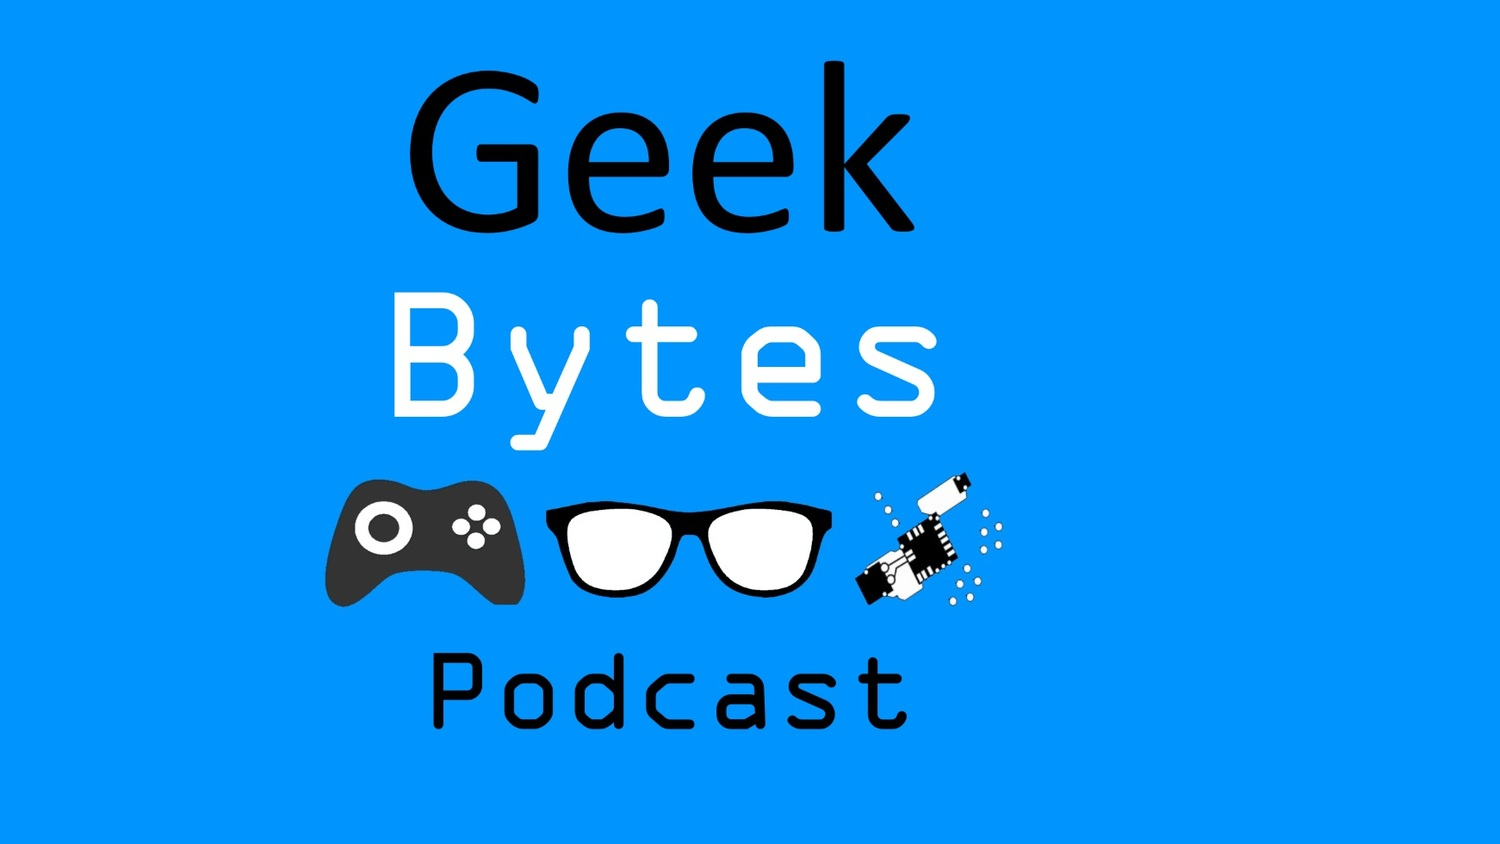 Geek Bytes Podcast